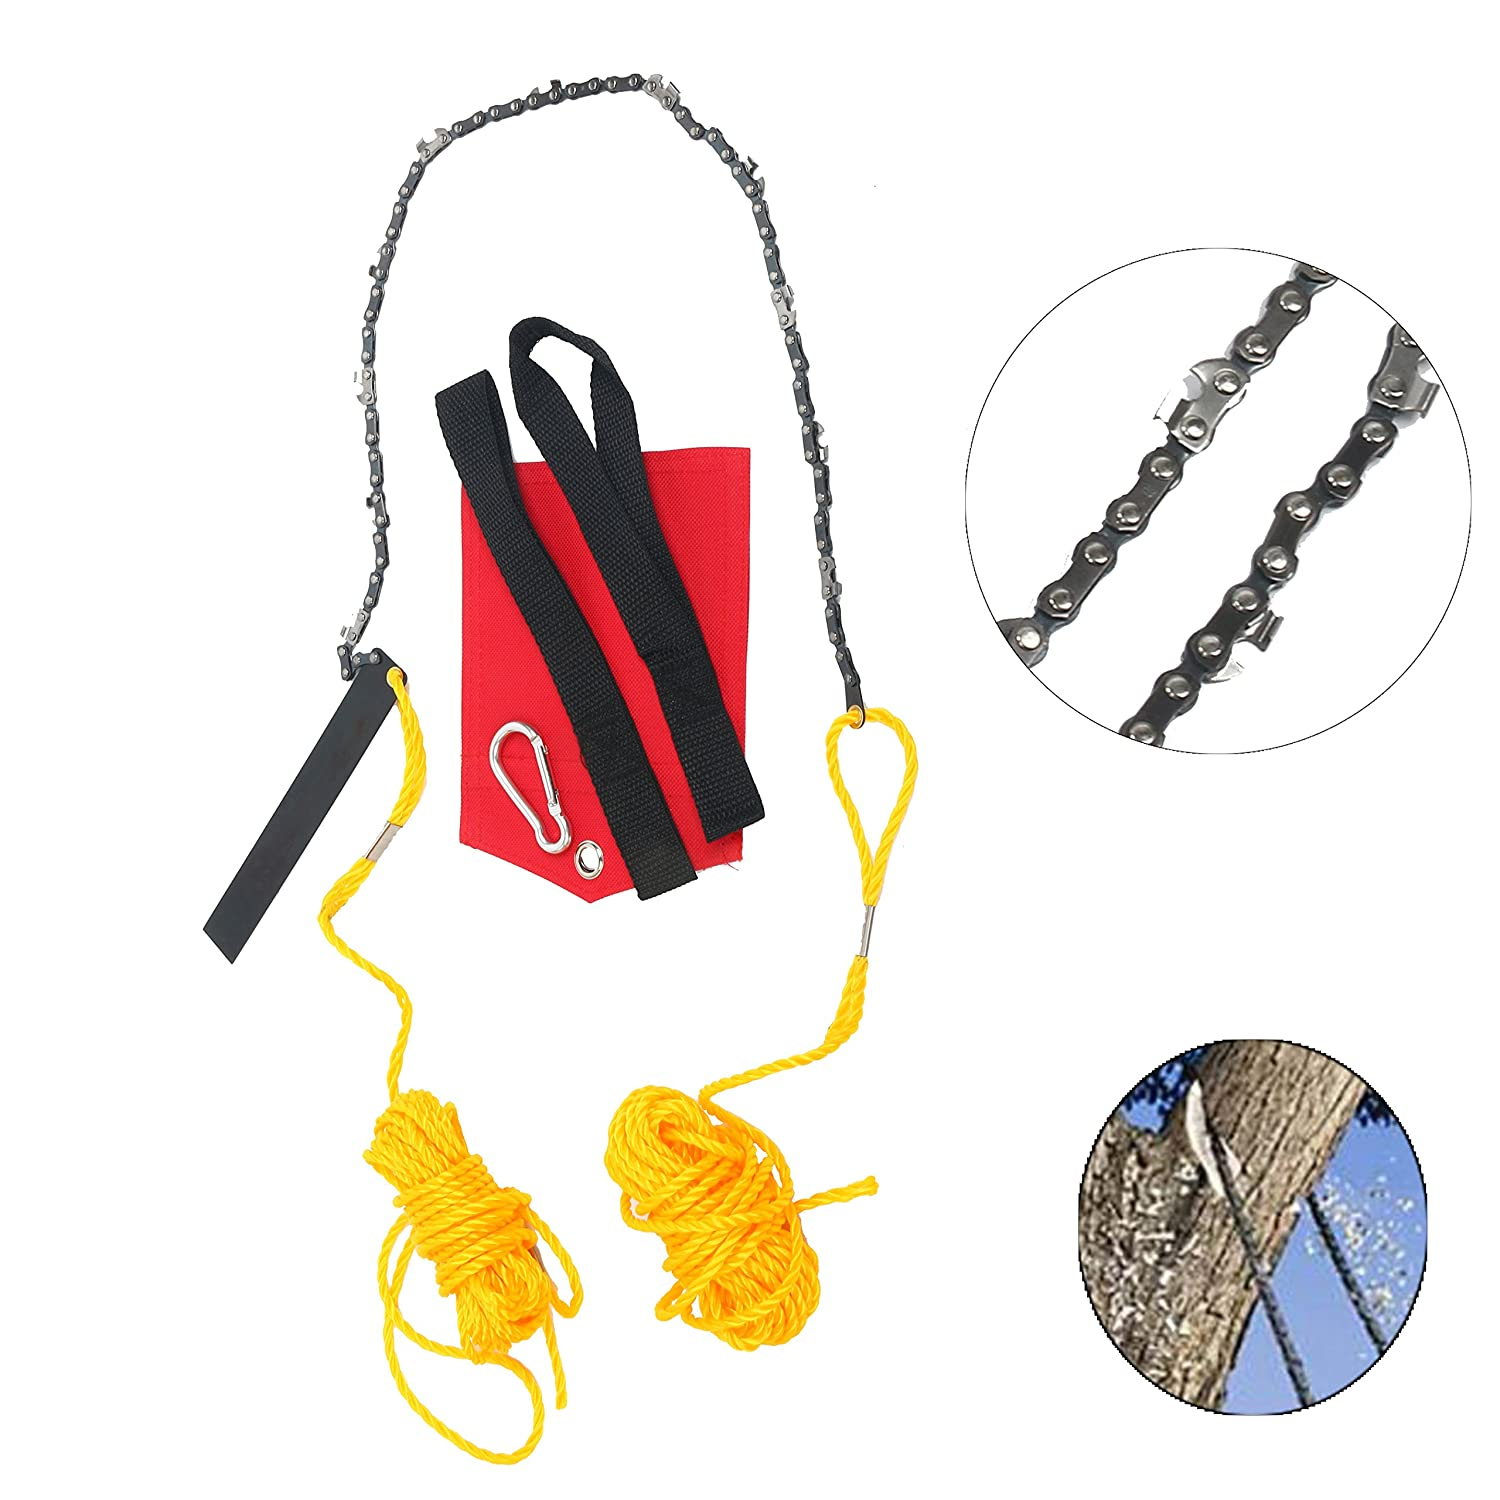 Amazoncom High Limb Brand CS RopeandChain Saw Camping - Creative door chain that is really safe